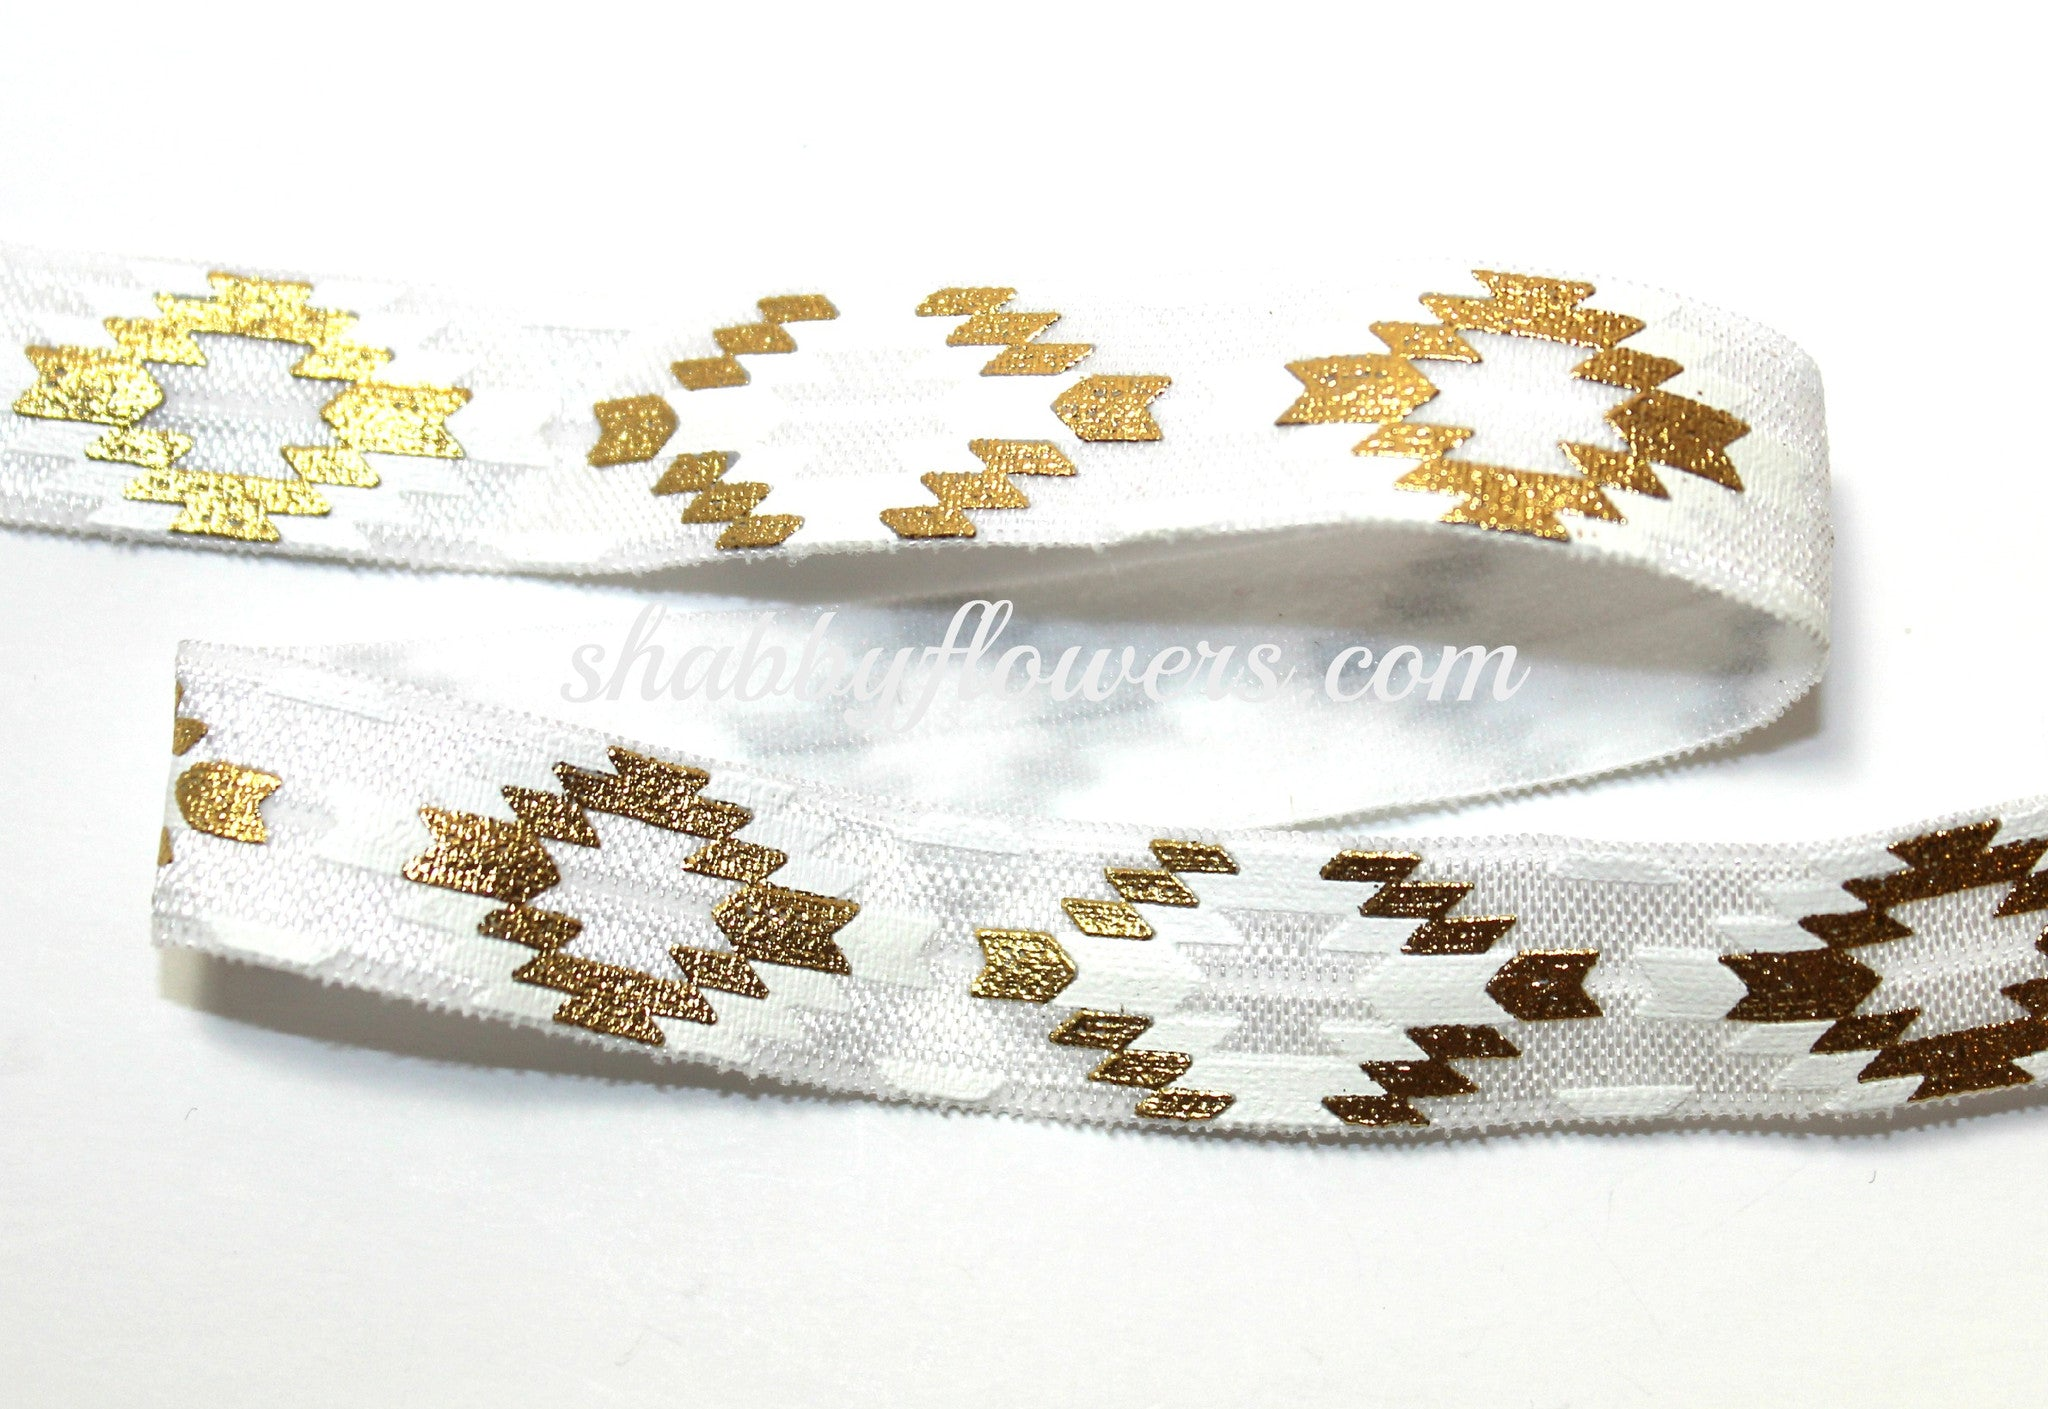 Elastic - Gold Foil Aztec on White - shabbyflowers.com